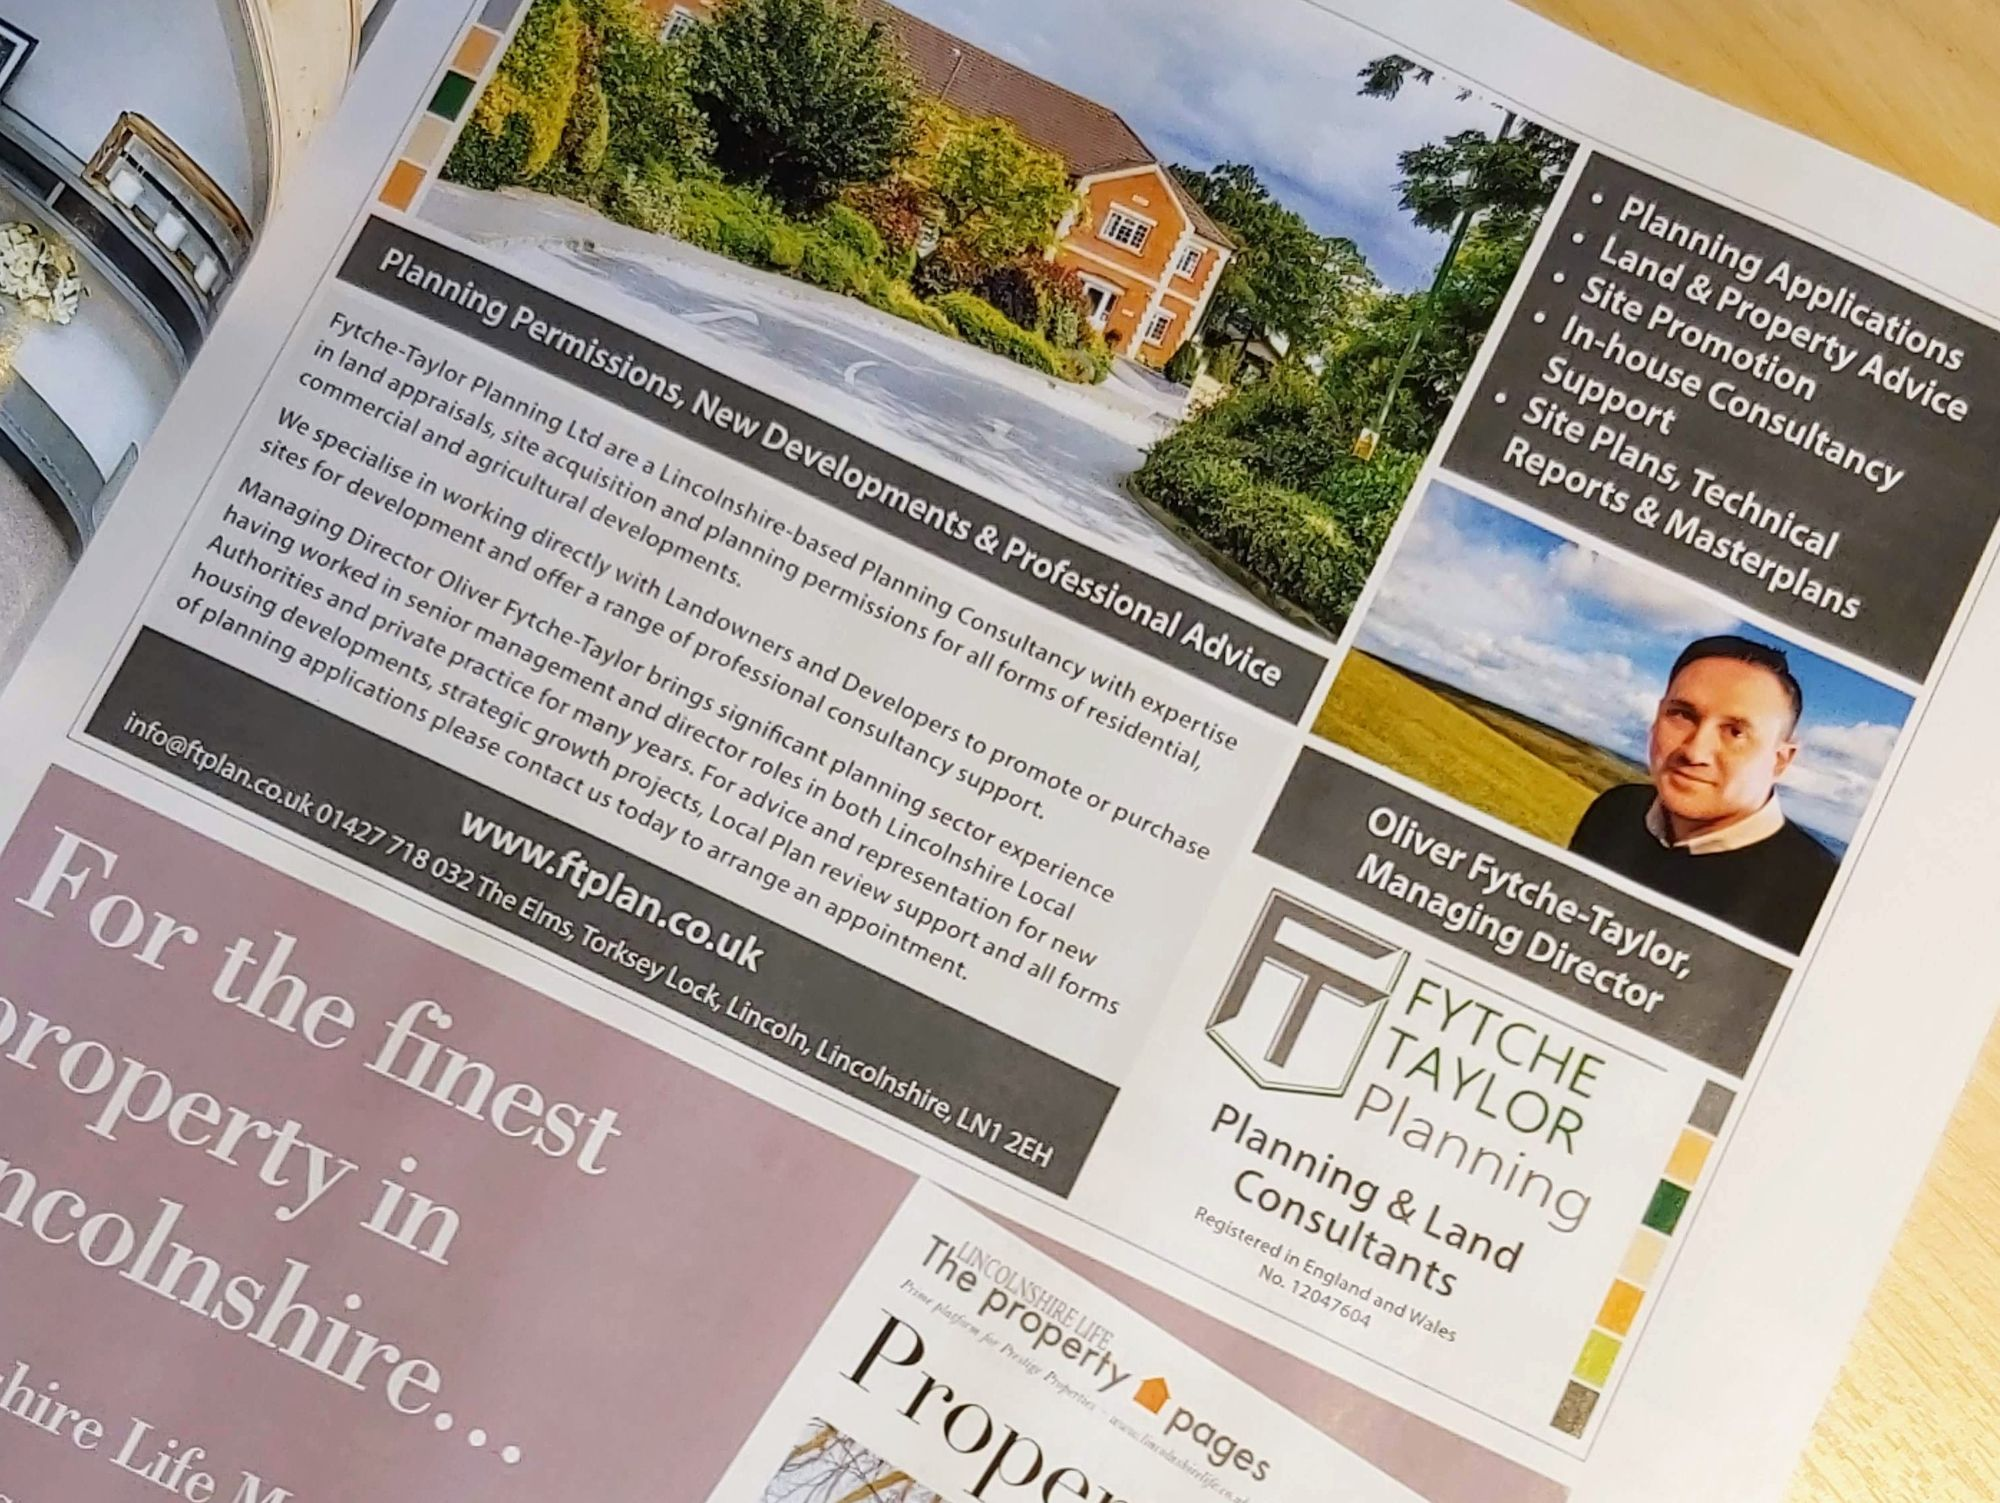 Latest news on planning permissions approved and new services from Fytche-Taylor Planning